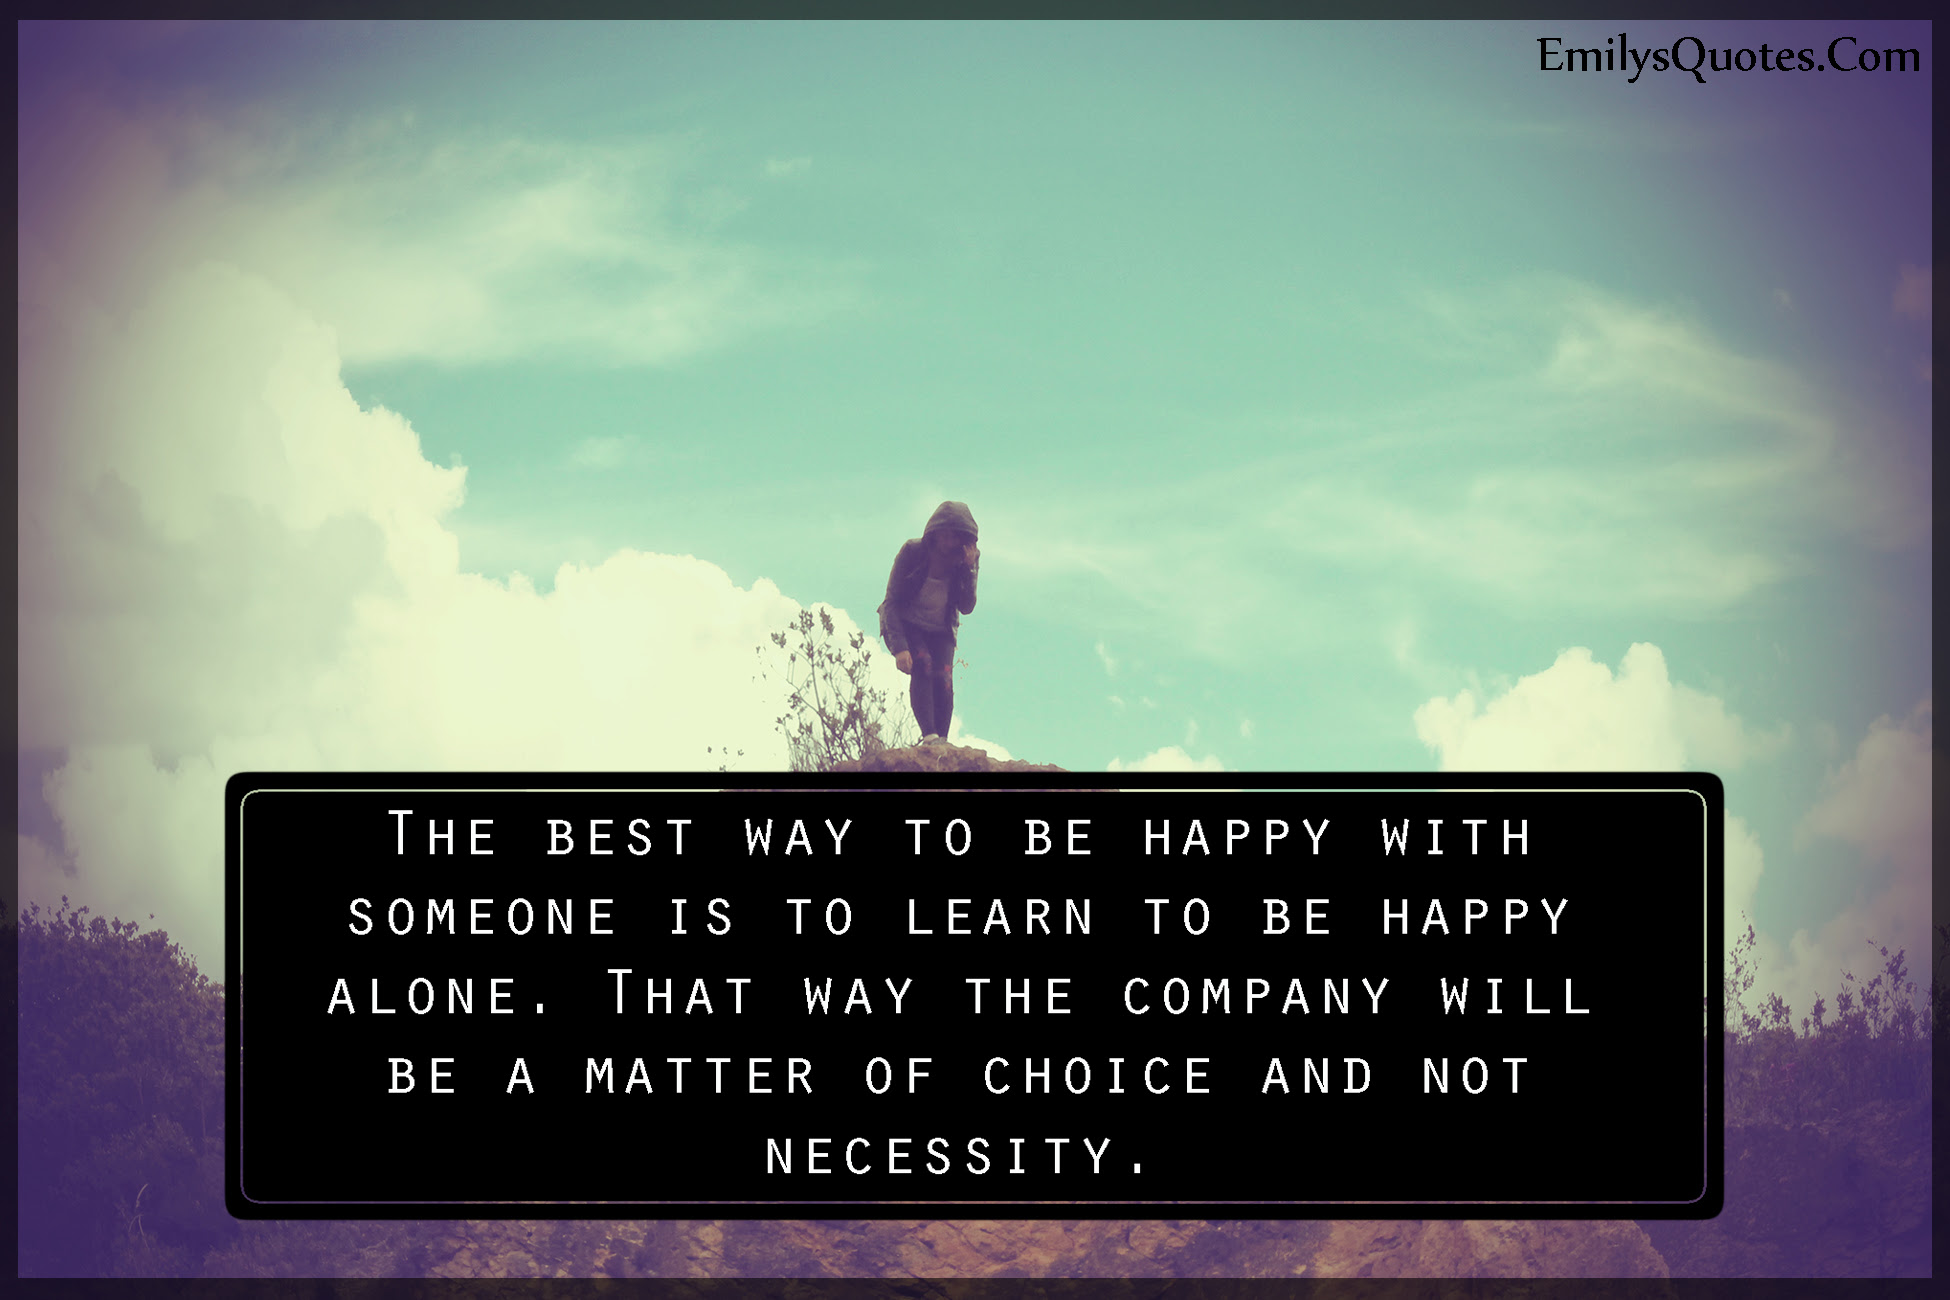 The Best Way To Be Happy With Someone Is To Learn To Be Happy Alone